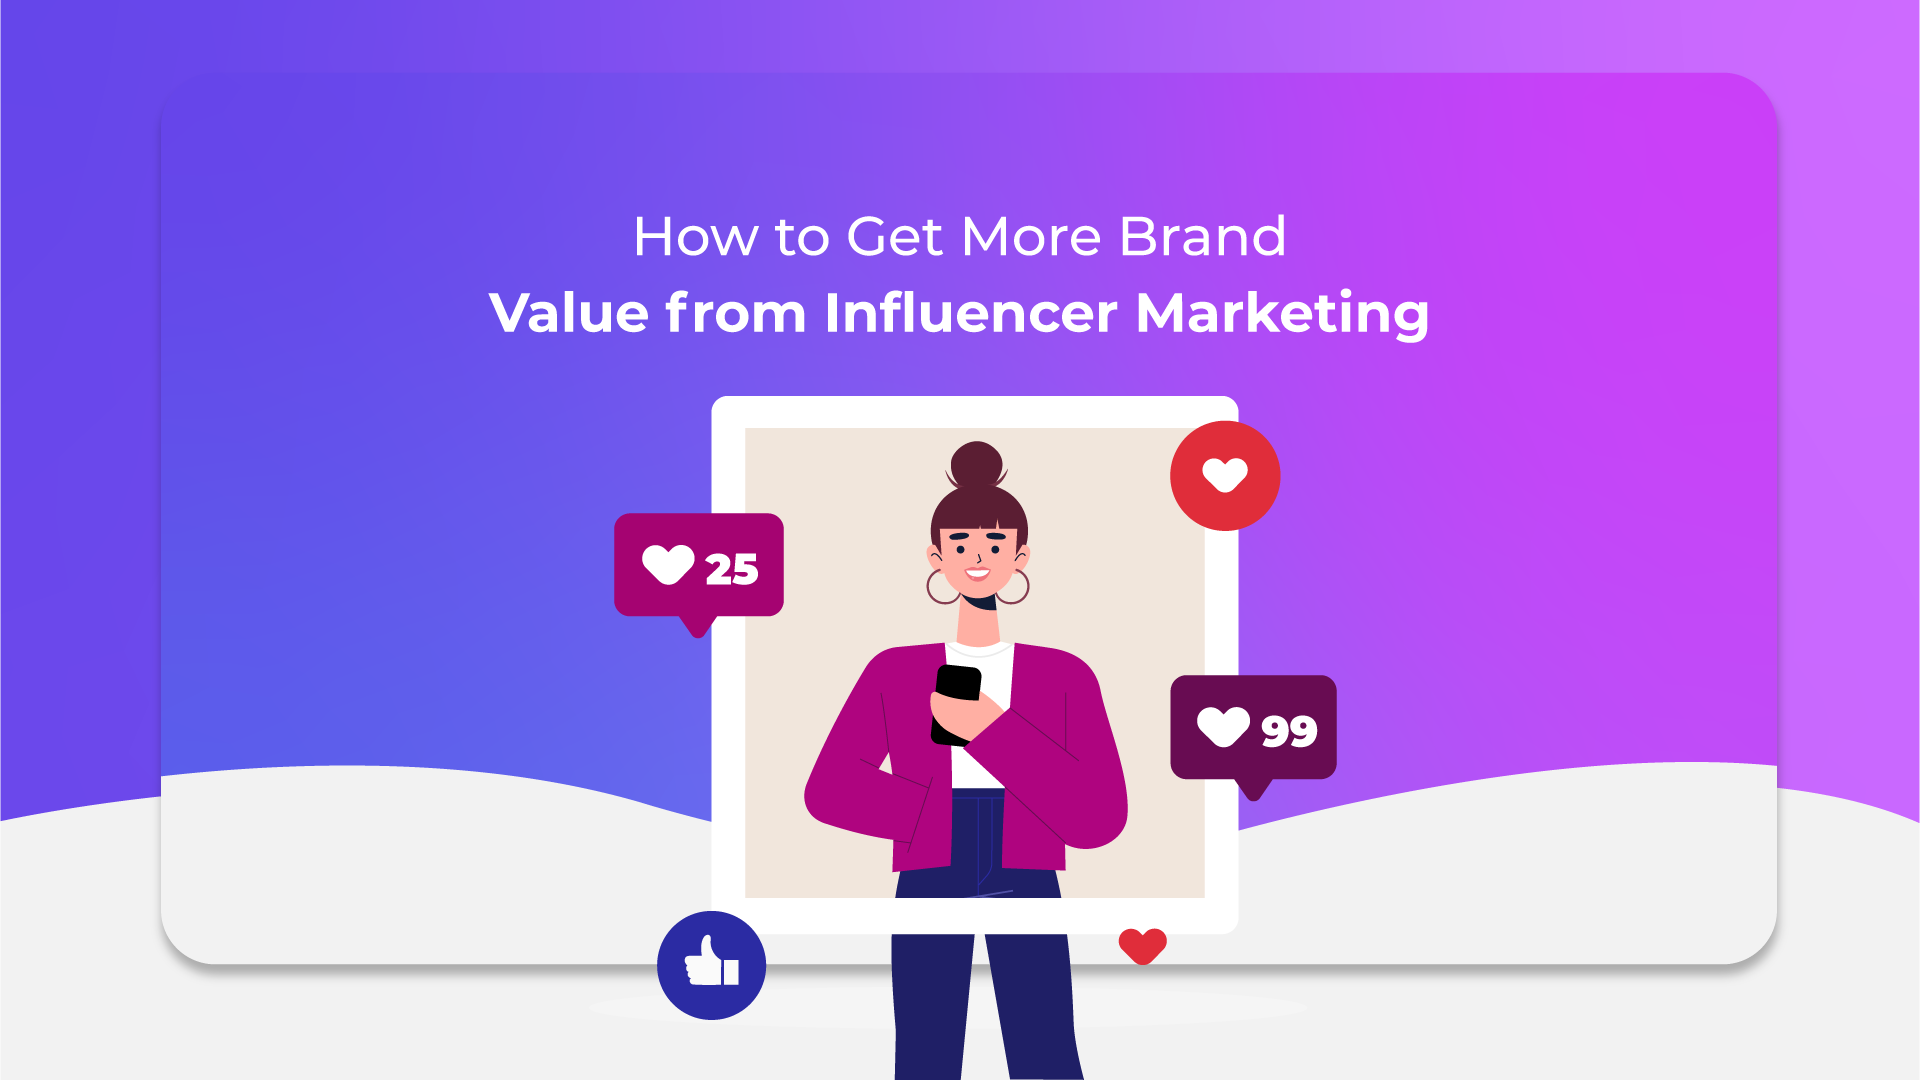 How to Get More Brand Value from Influencer Marketing